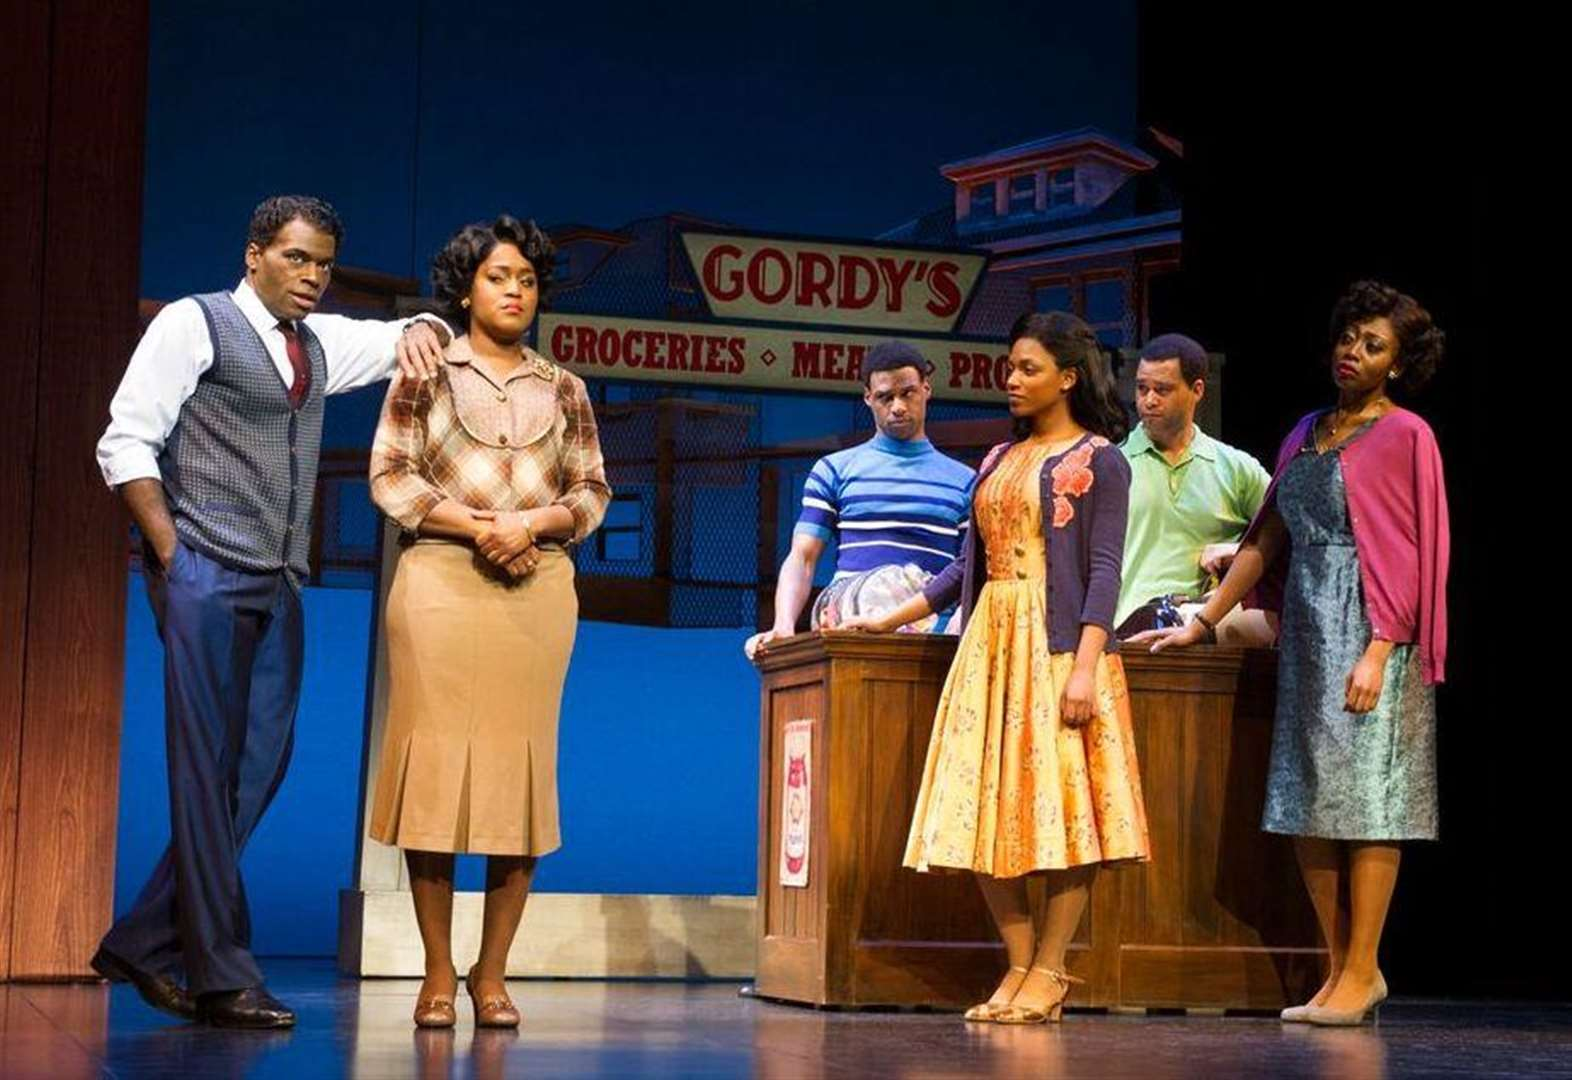 Get down with this big Motown The Musical ticket offer